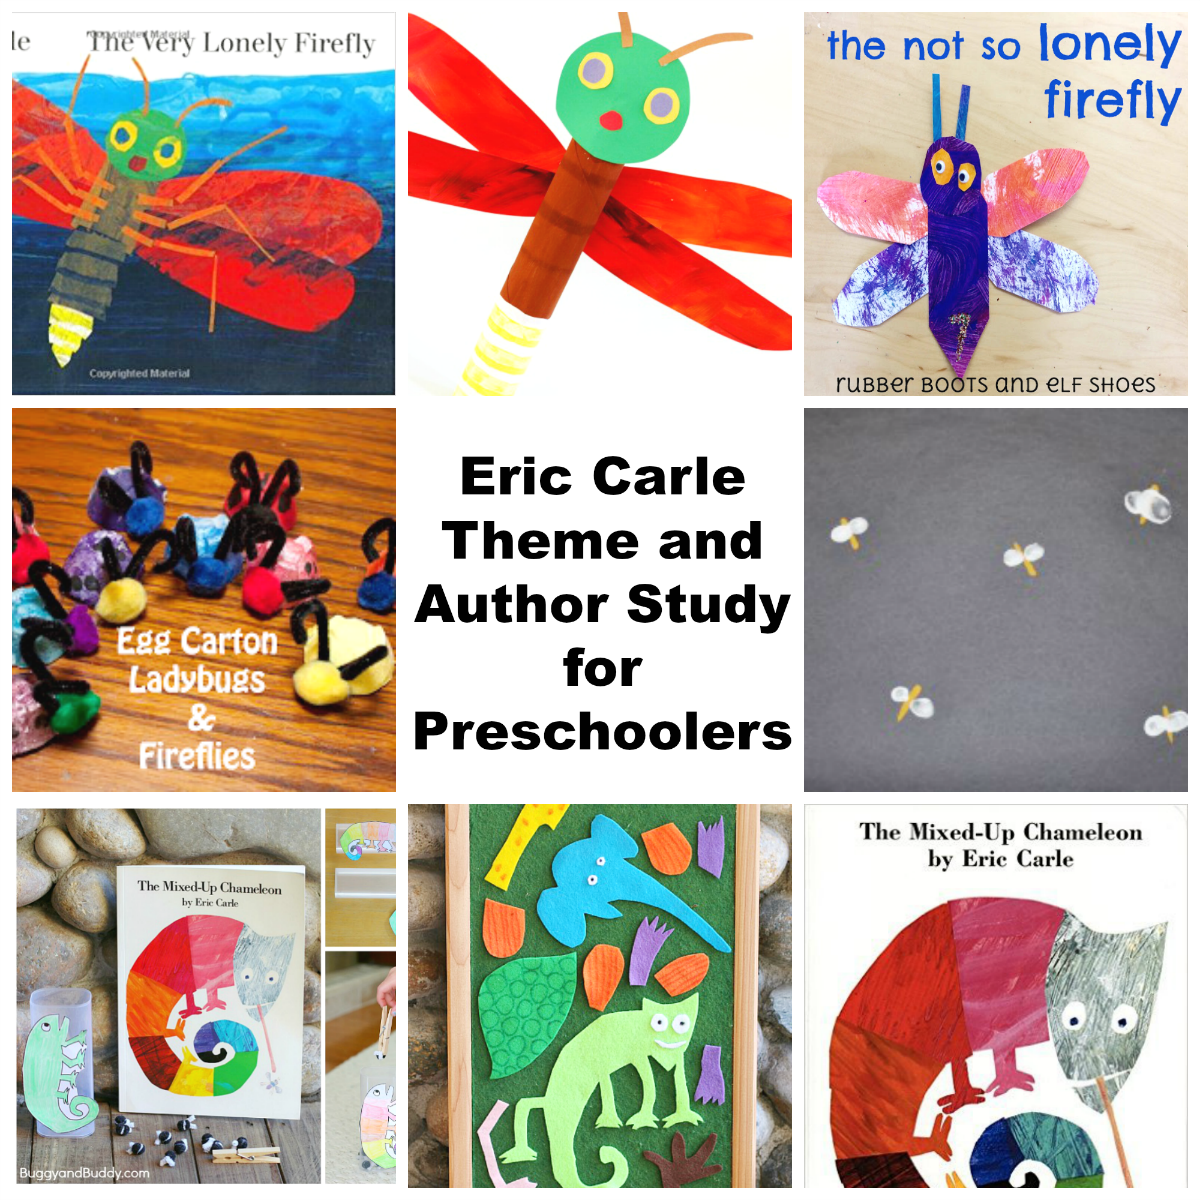 Eric Carle Theme and Author Study for Preschoolers